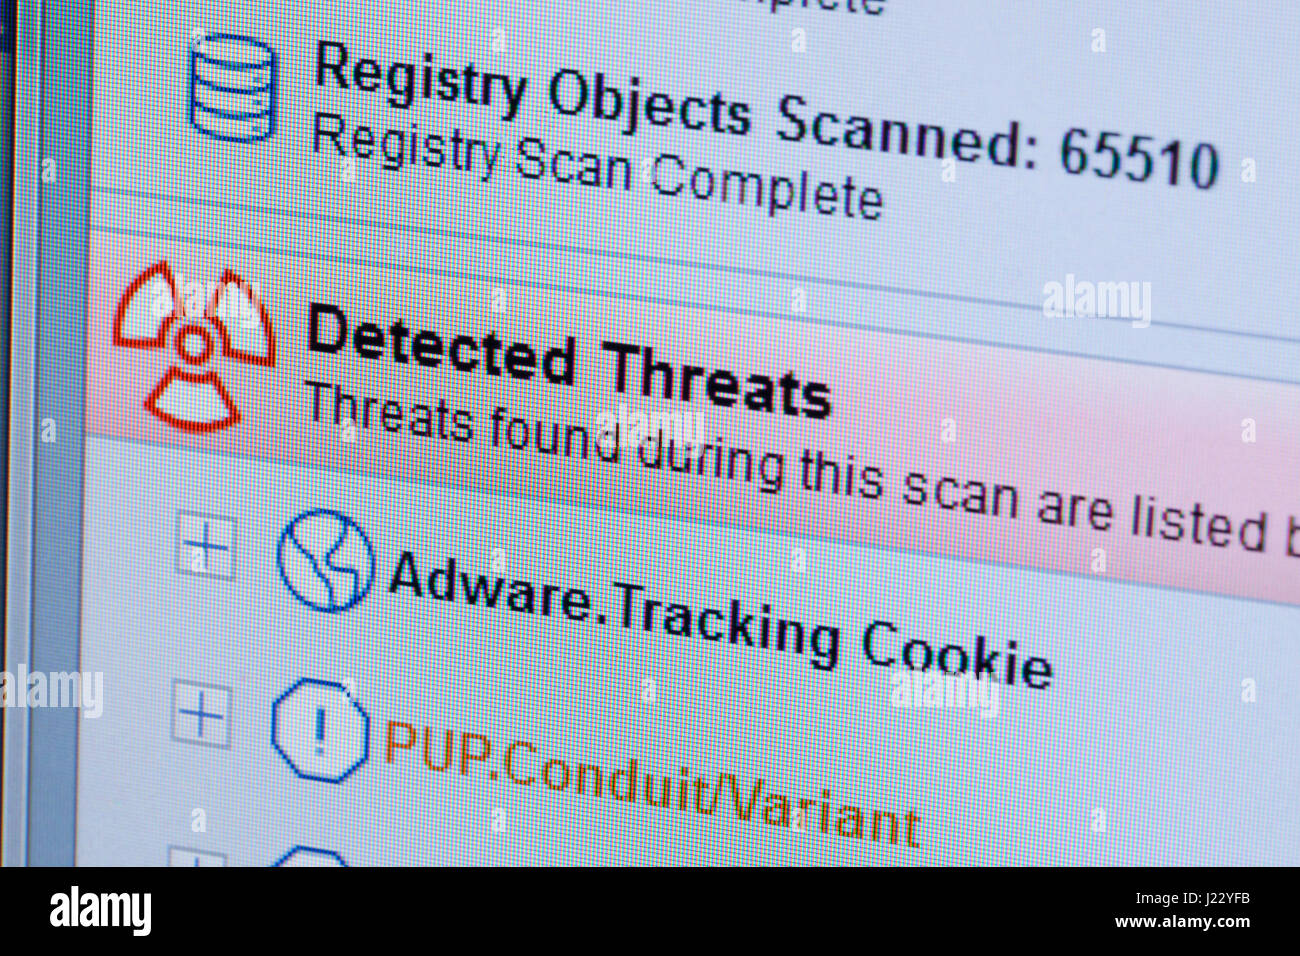 Adware / Malware scanner result on computer screen - USA - Stock Image